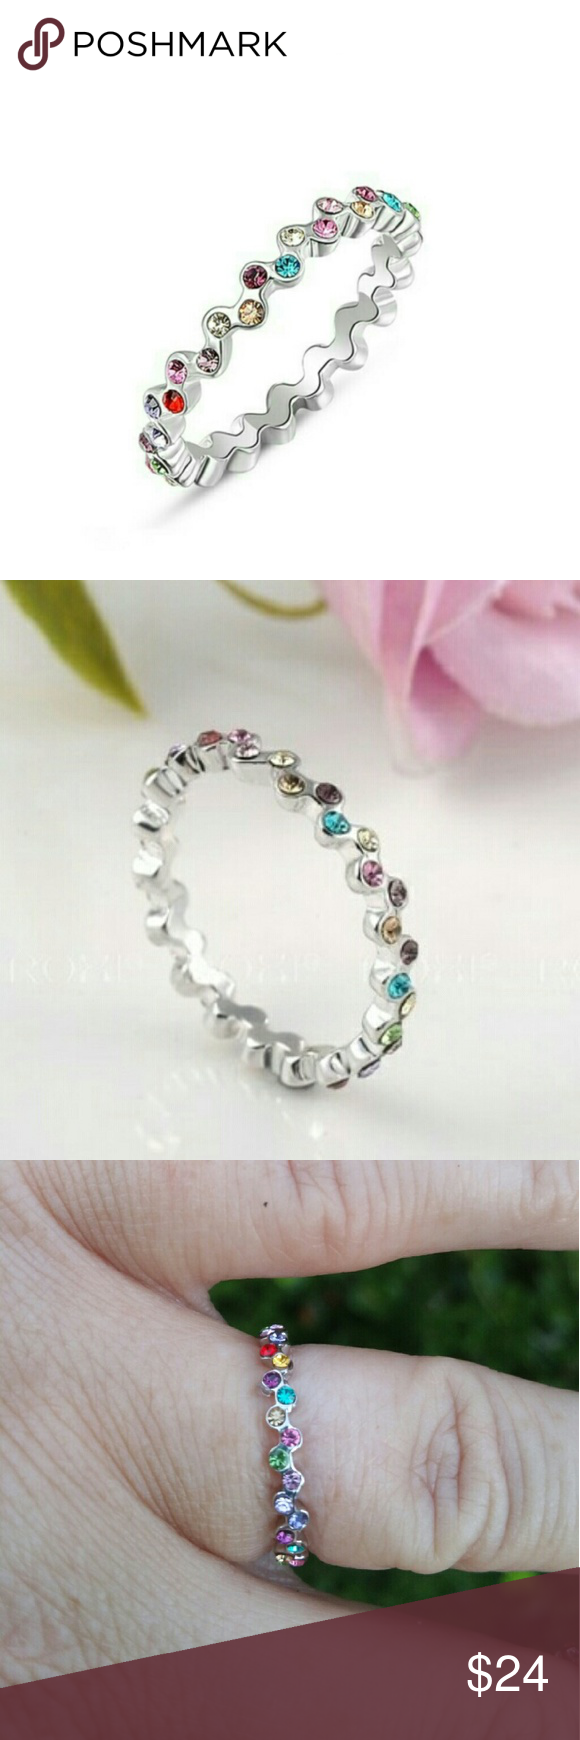 Platinum Plated Multi colored Crystal Band 6.5 & 8 Platinum Plated Multi colored Crystal Band Sizes 6.5 & 8 available. Jewelry Rings